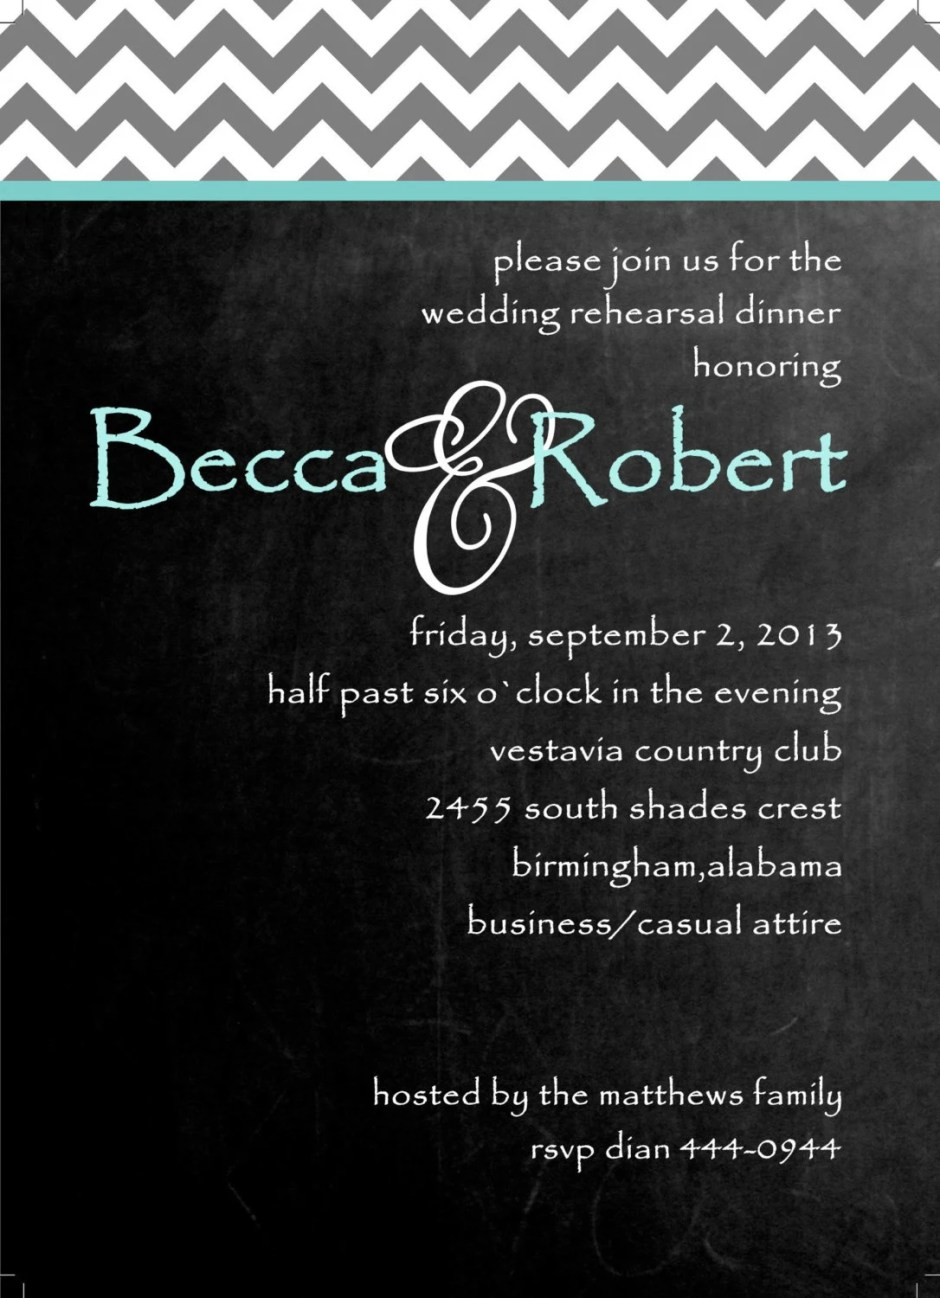 Rehearsal Dinner invitati...